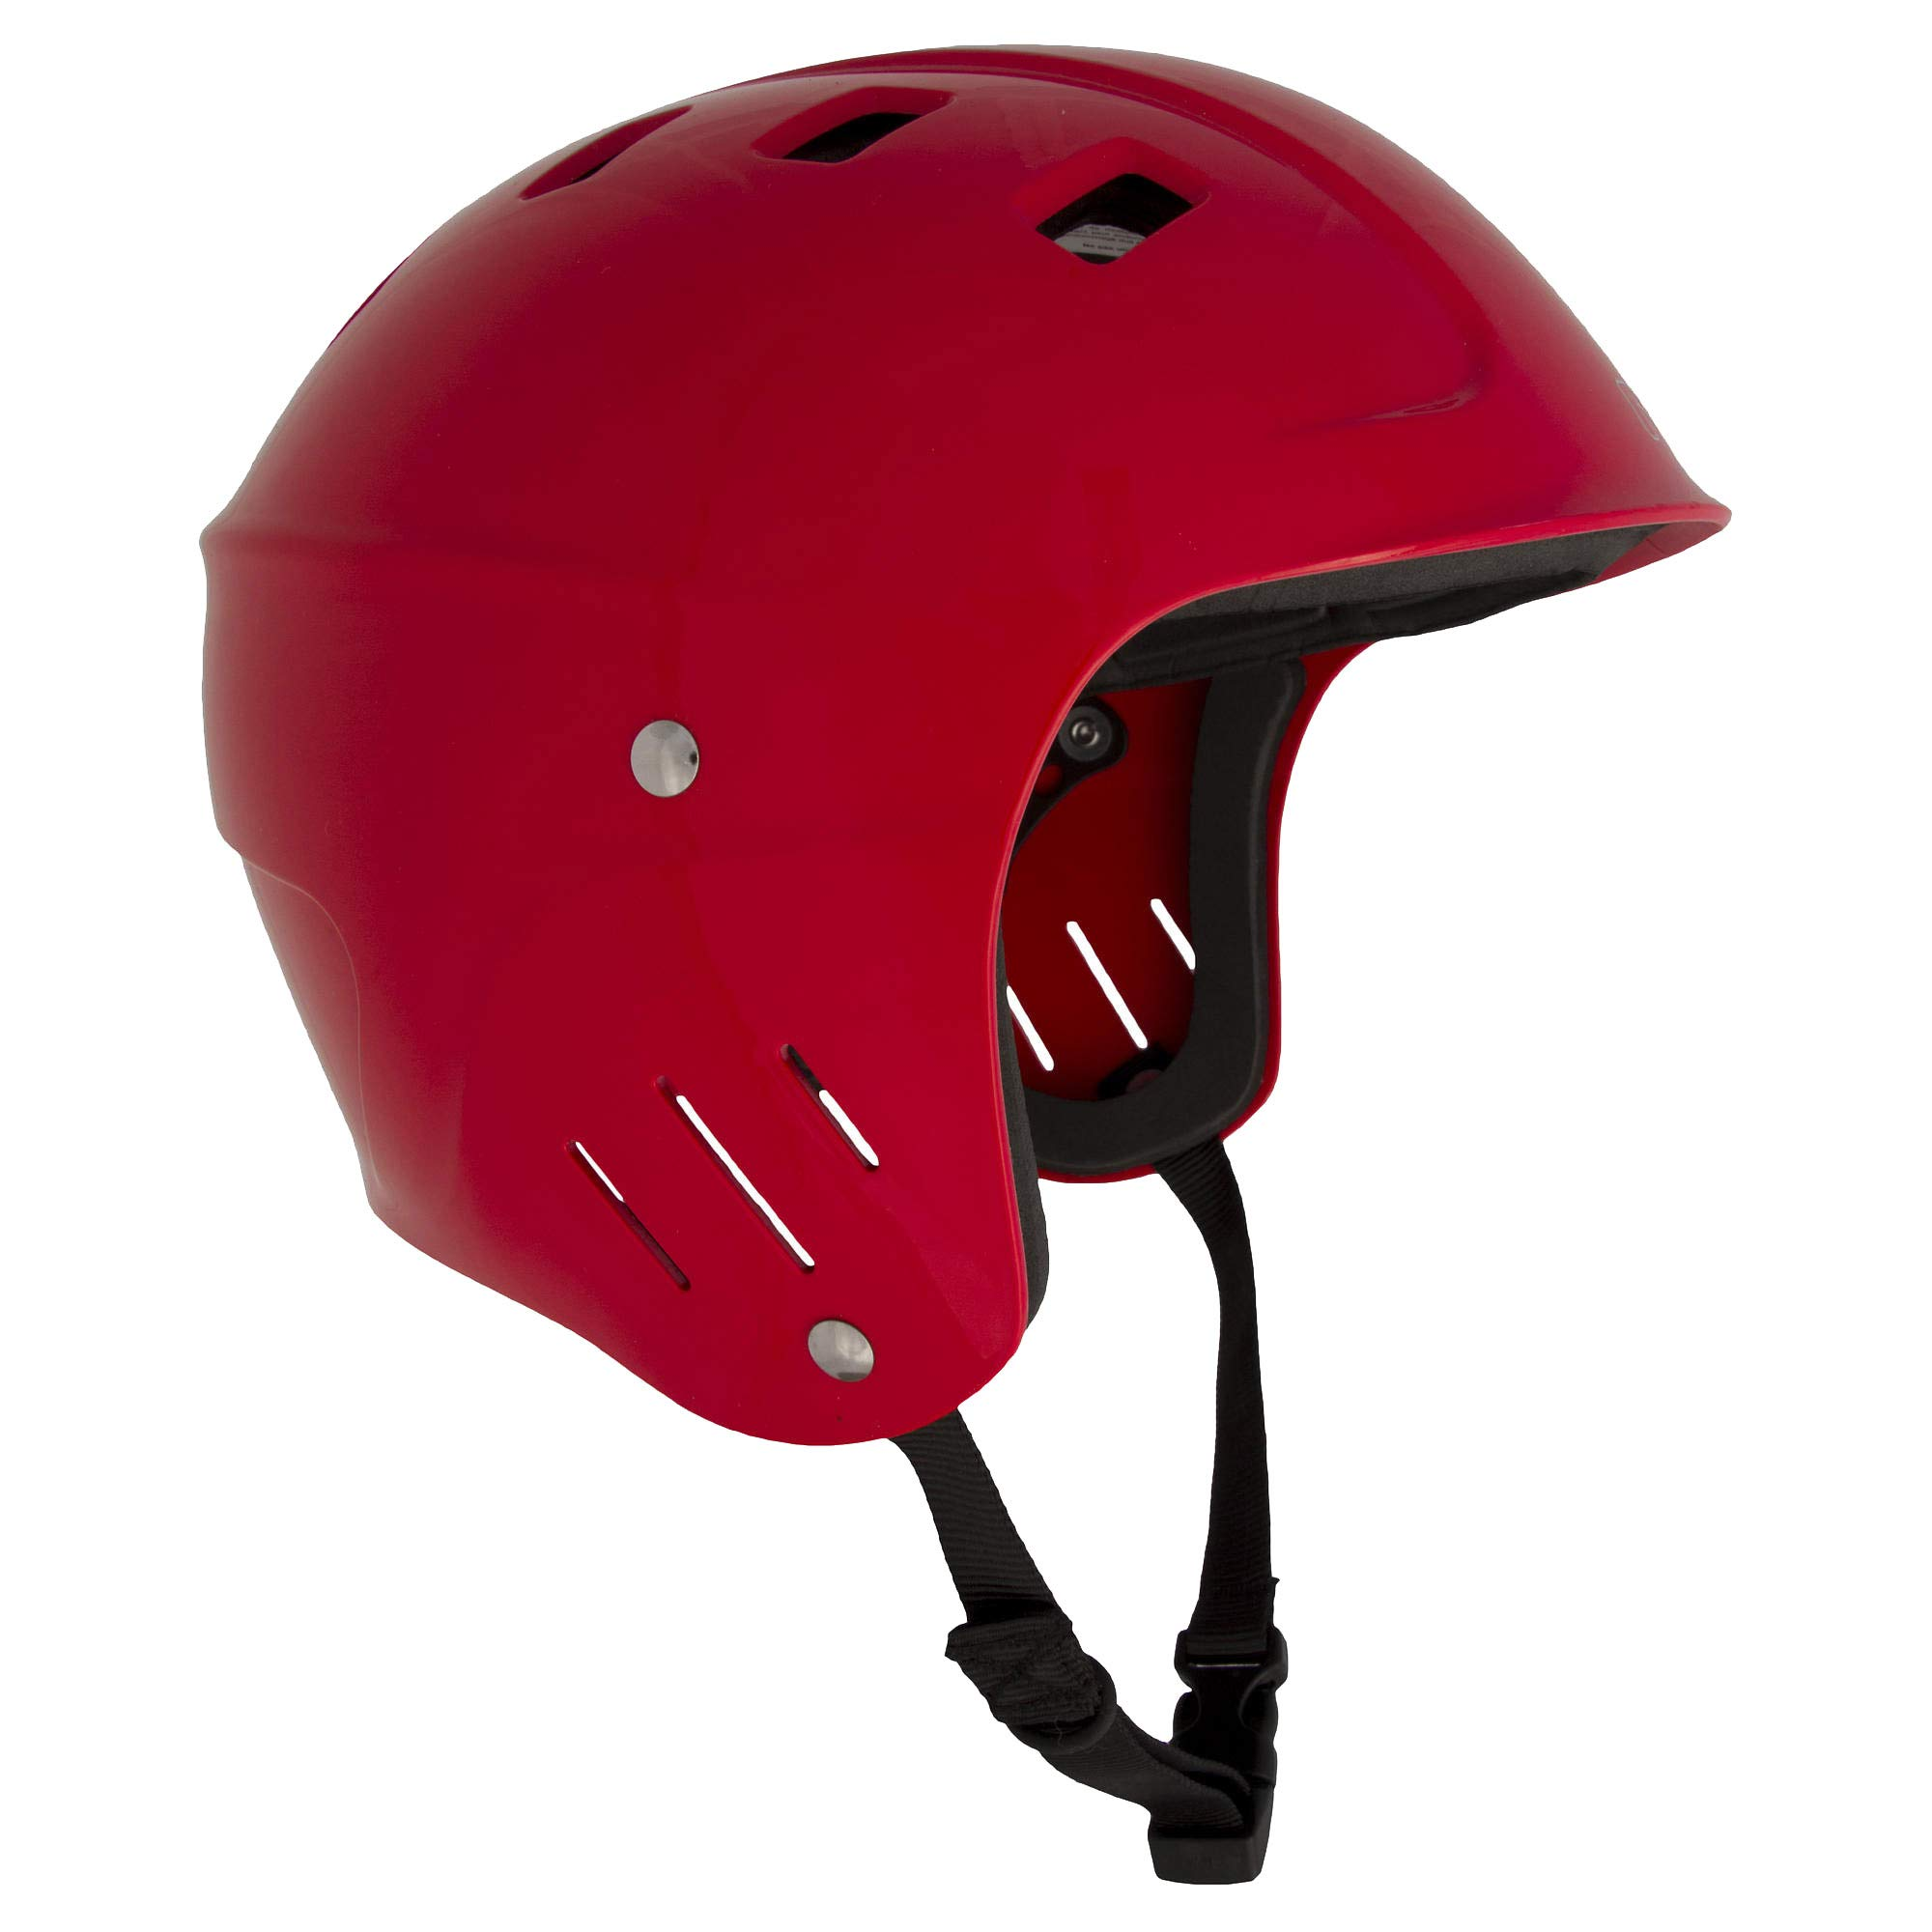 NRS Chaos Helmet - Full Cut Red Large by NRS